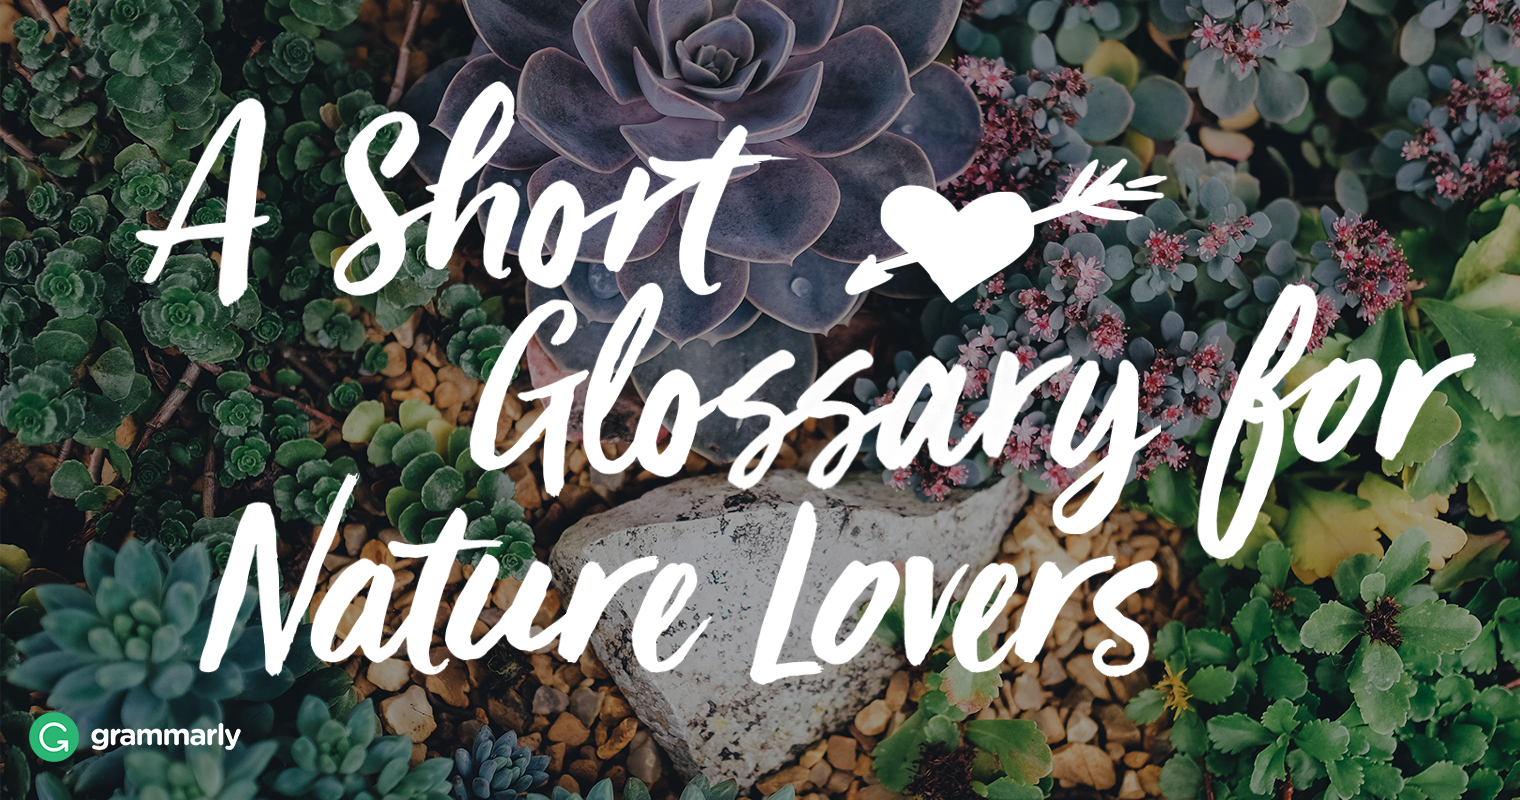 7 Words for Nature Lovers